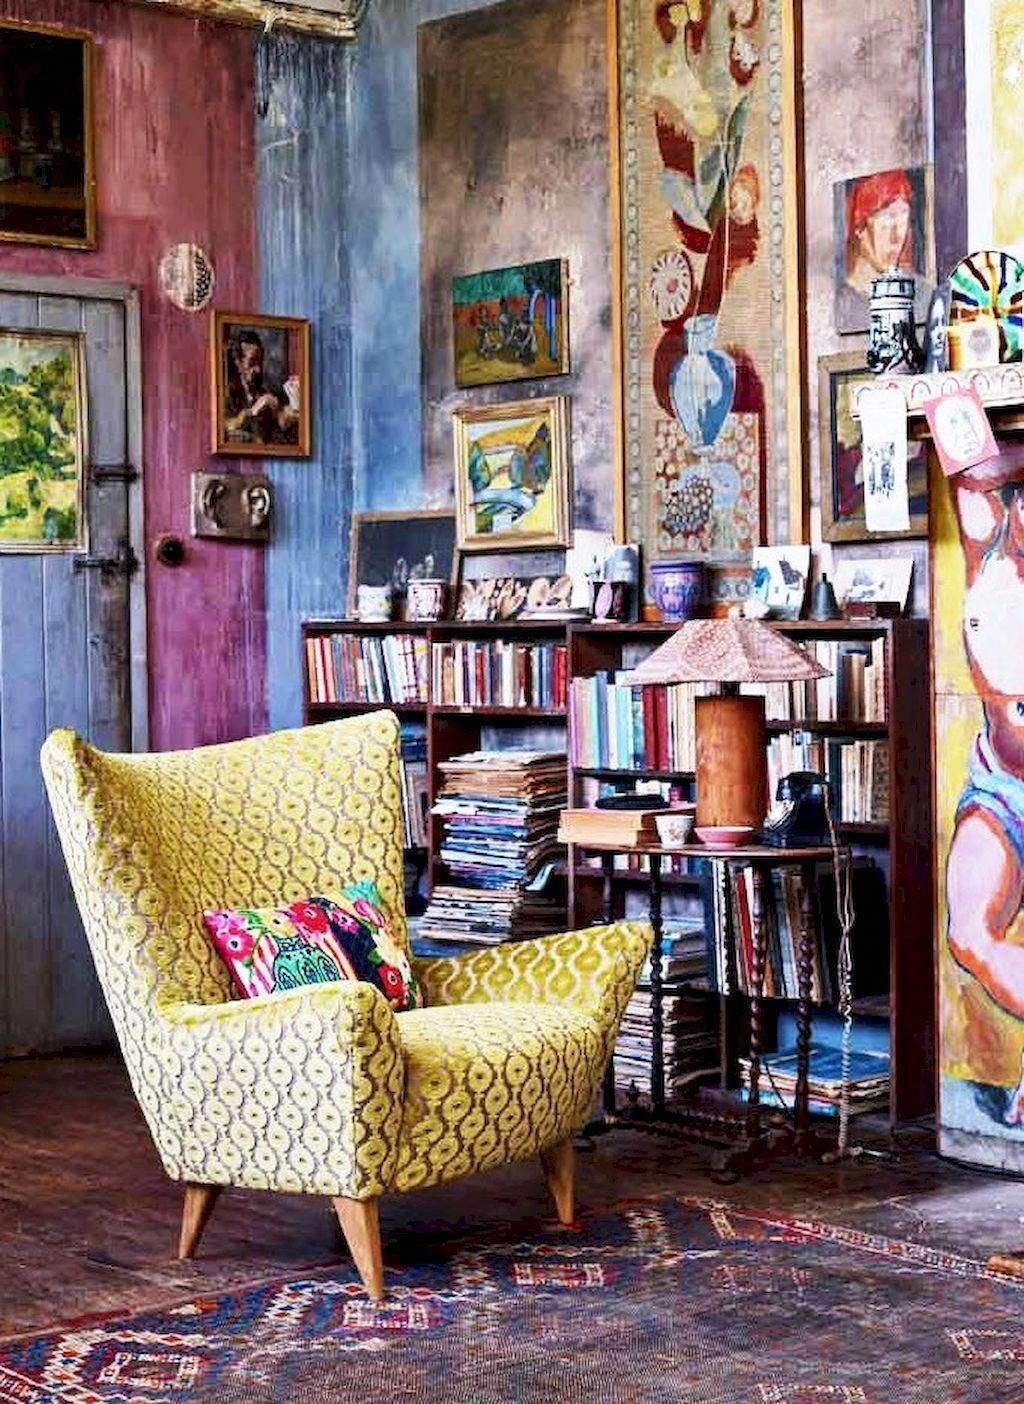 Boho Library Wall Living Room: 60 Amazing Library Room Design Ideas With Eclectic Decor